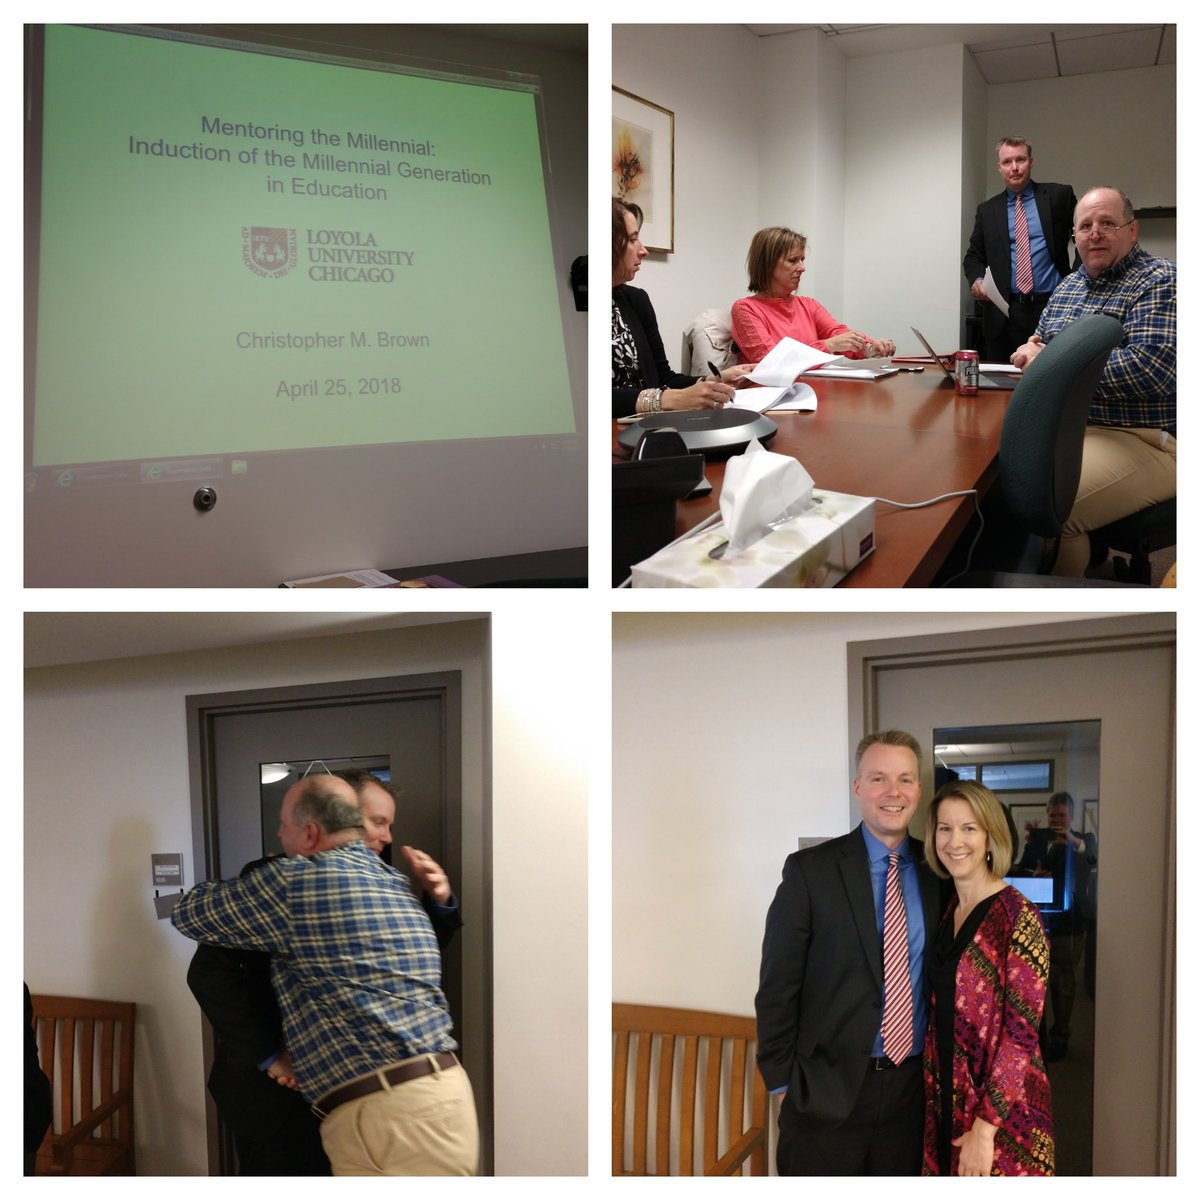 test Twitter Media - Congratulations to Dr. Brown who successfully defended his dissertation this morning! #D30learns https://t.co/Fcb9bVg3Ov